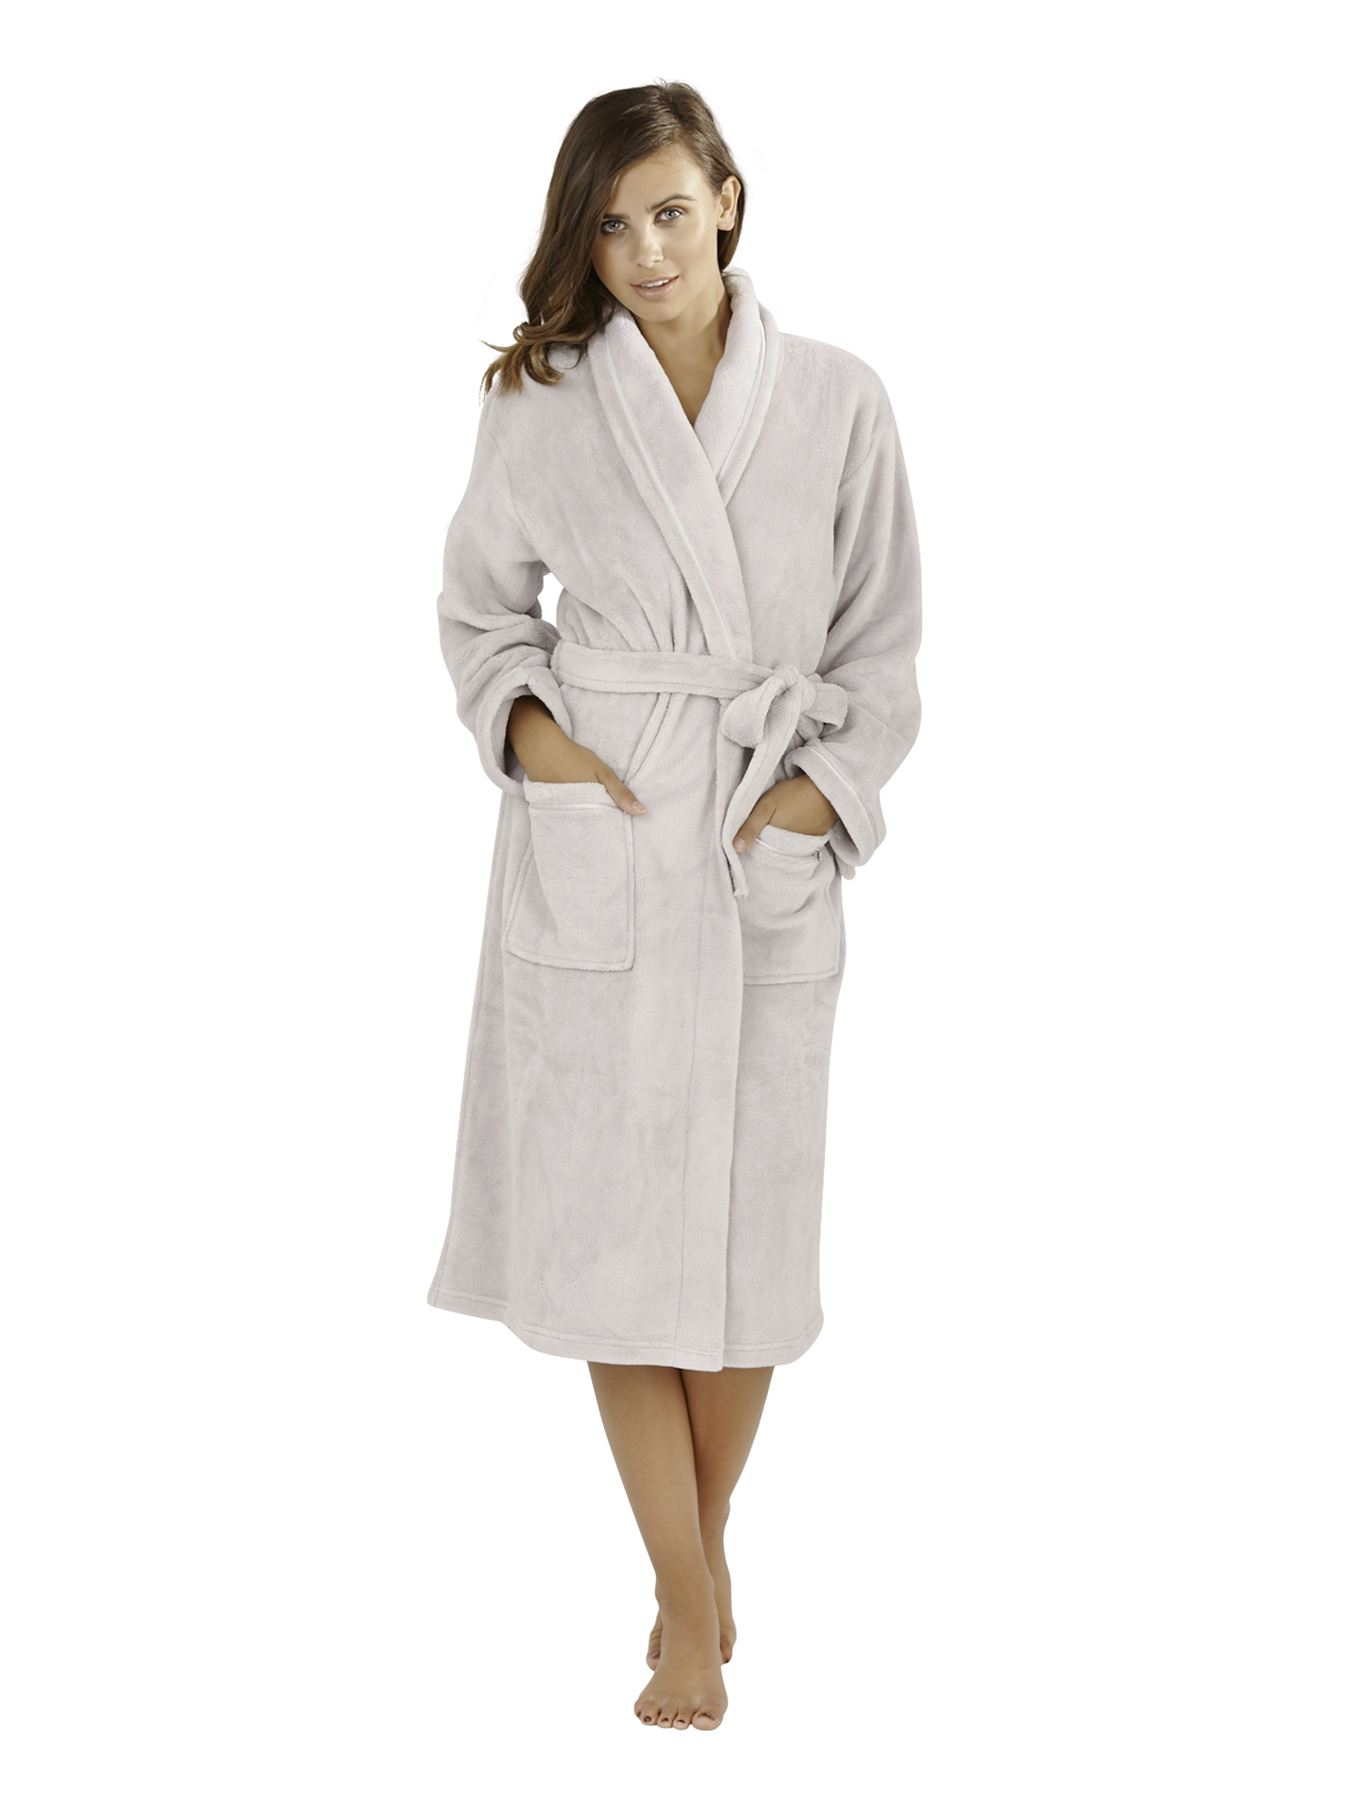 Women's Robes - Sleep, Bath & LoungeApparel, Home & More· New Events Every Day· Hurry, Limited Inventory· New Deals Every Dayone of zulily's values is that they work for mom. – Momtrends.